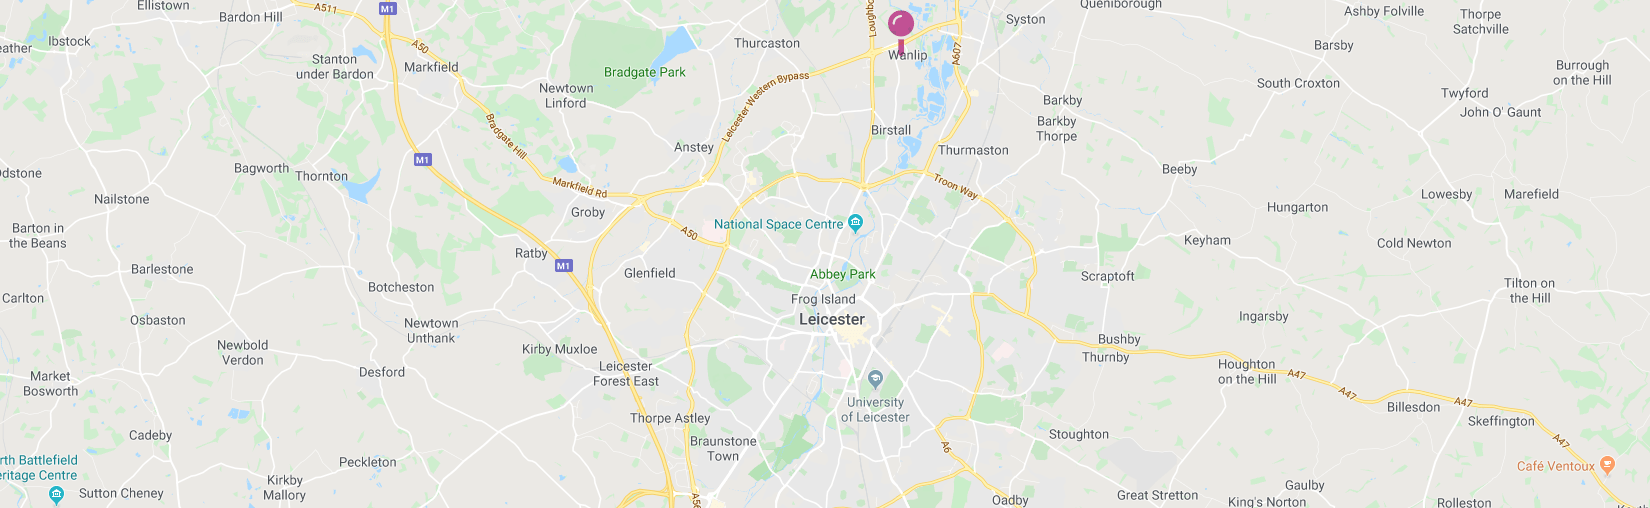 Map of Leicester